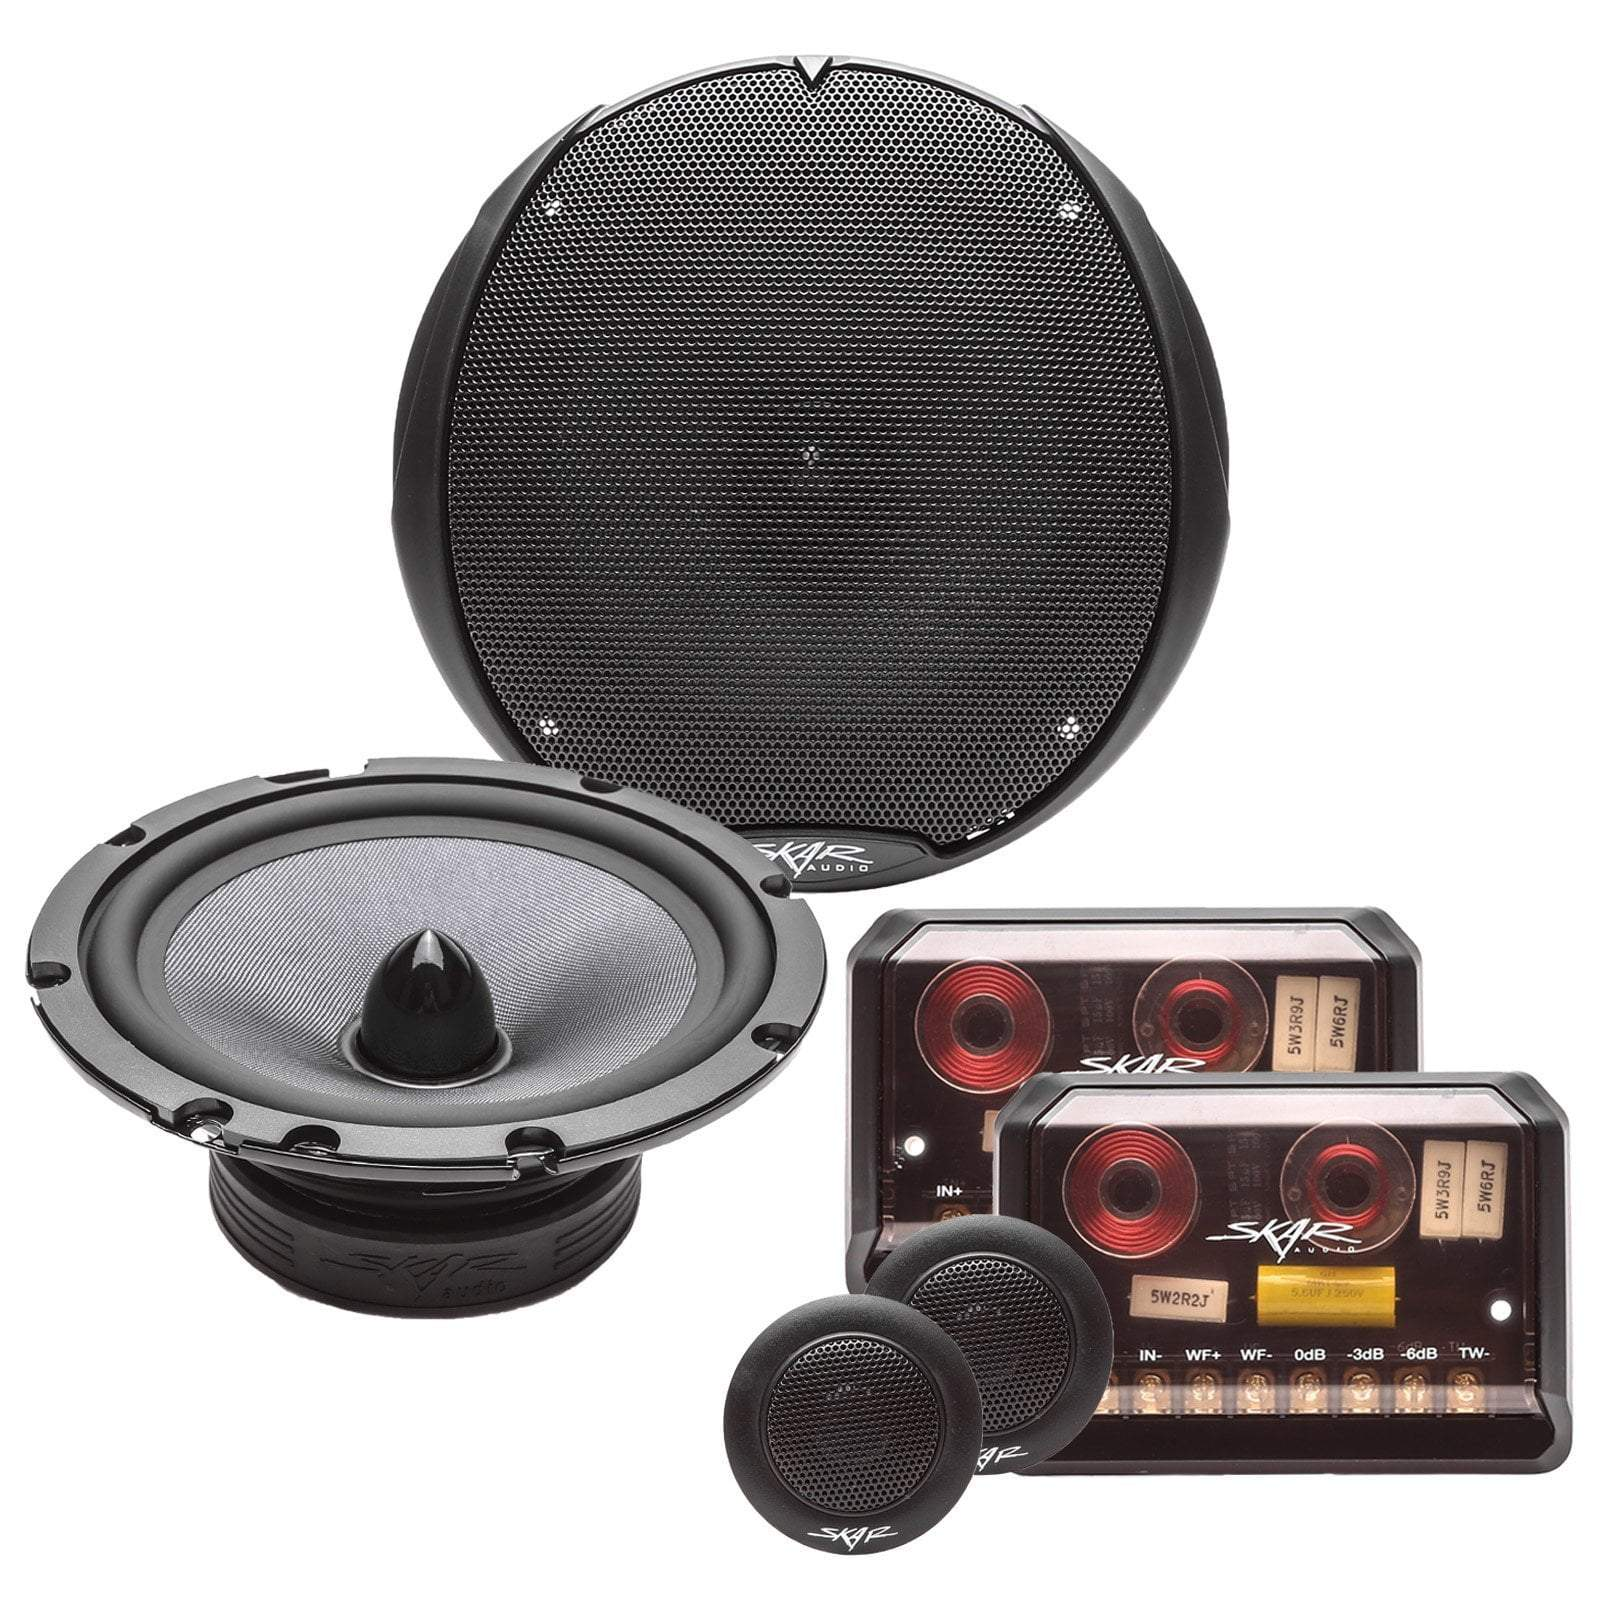 Skar Audio TX65C 6.5-inch 200 Watt Max Power Component Speaker System - Complete System View